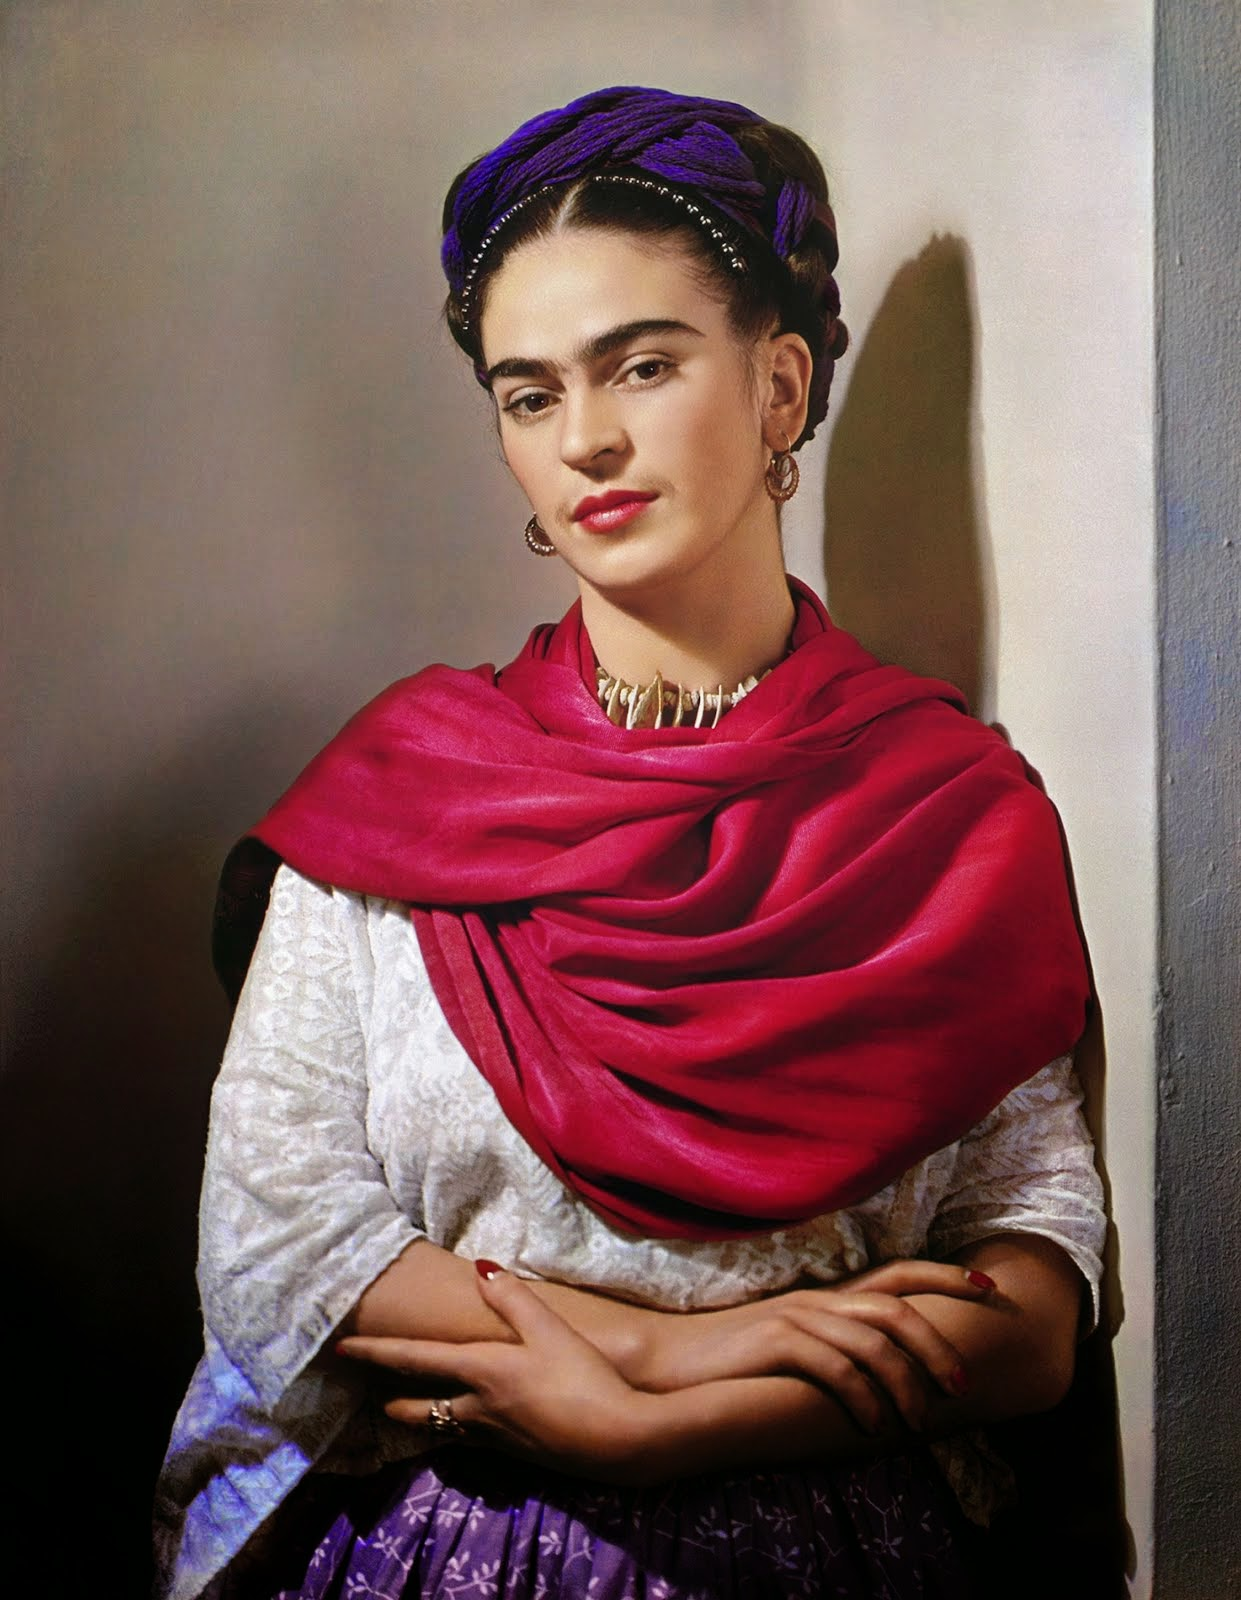 museo lopi famous frida kahlo paintings. Black Bedroom Furniture Sets. Home Design Ideas